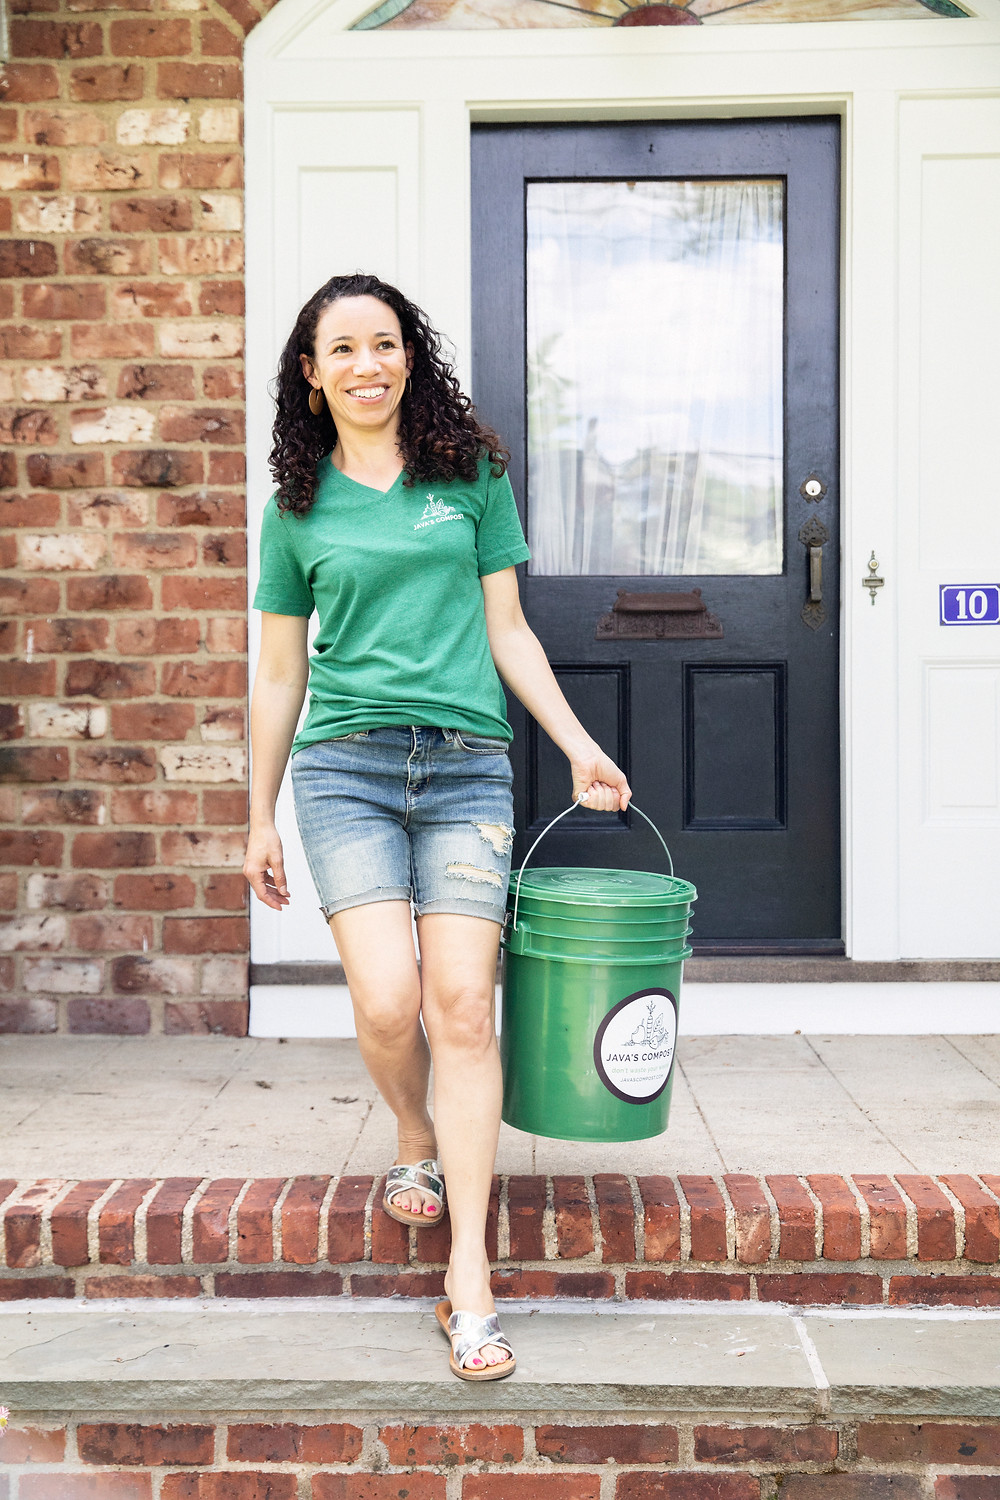 Michelle carrying a compost bucket from someone's house